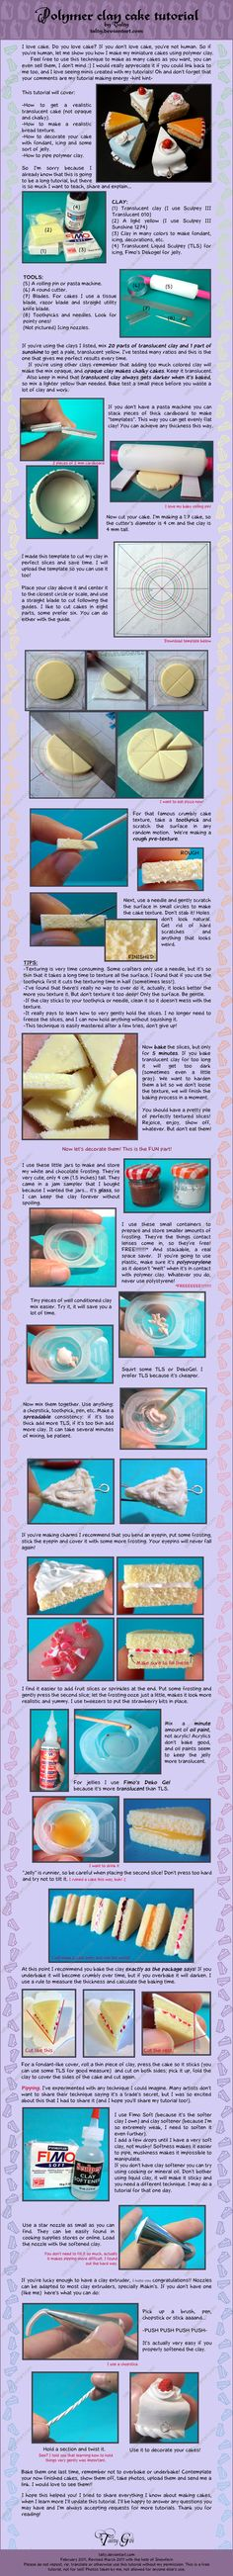 Polymer Clay Cake Tutorial by ^Talty on deviantART    It looks so delicious, I want to eat it!